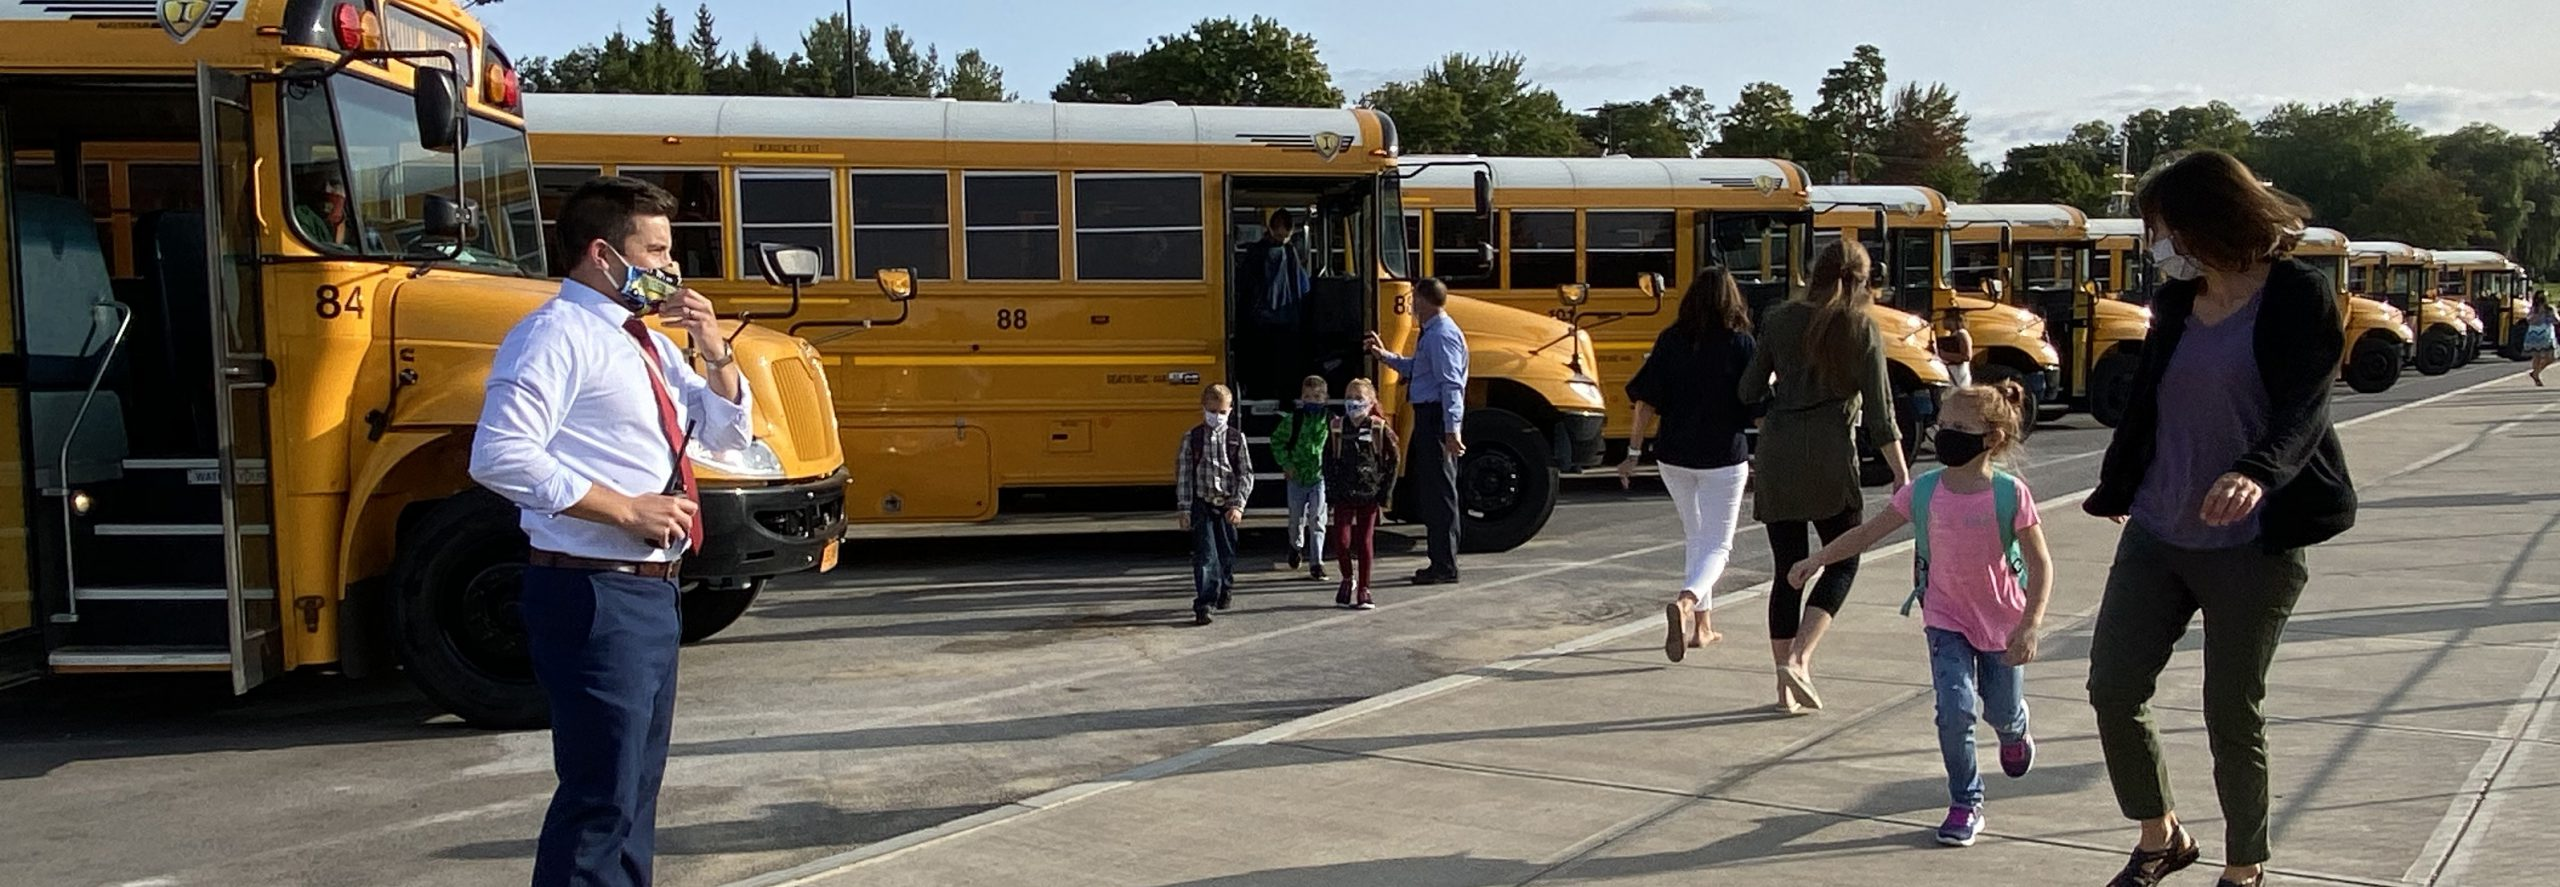 adults and children on a sidewalk in front of a row of parked buses